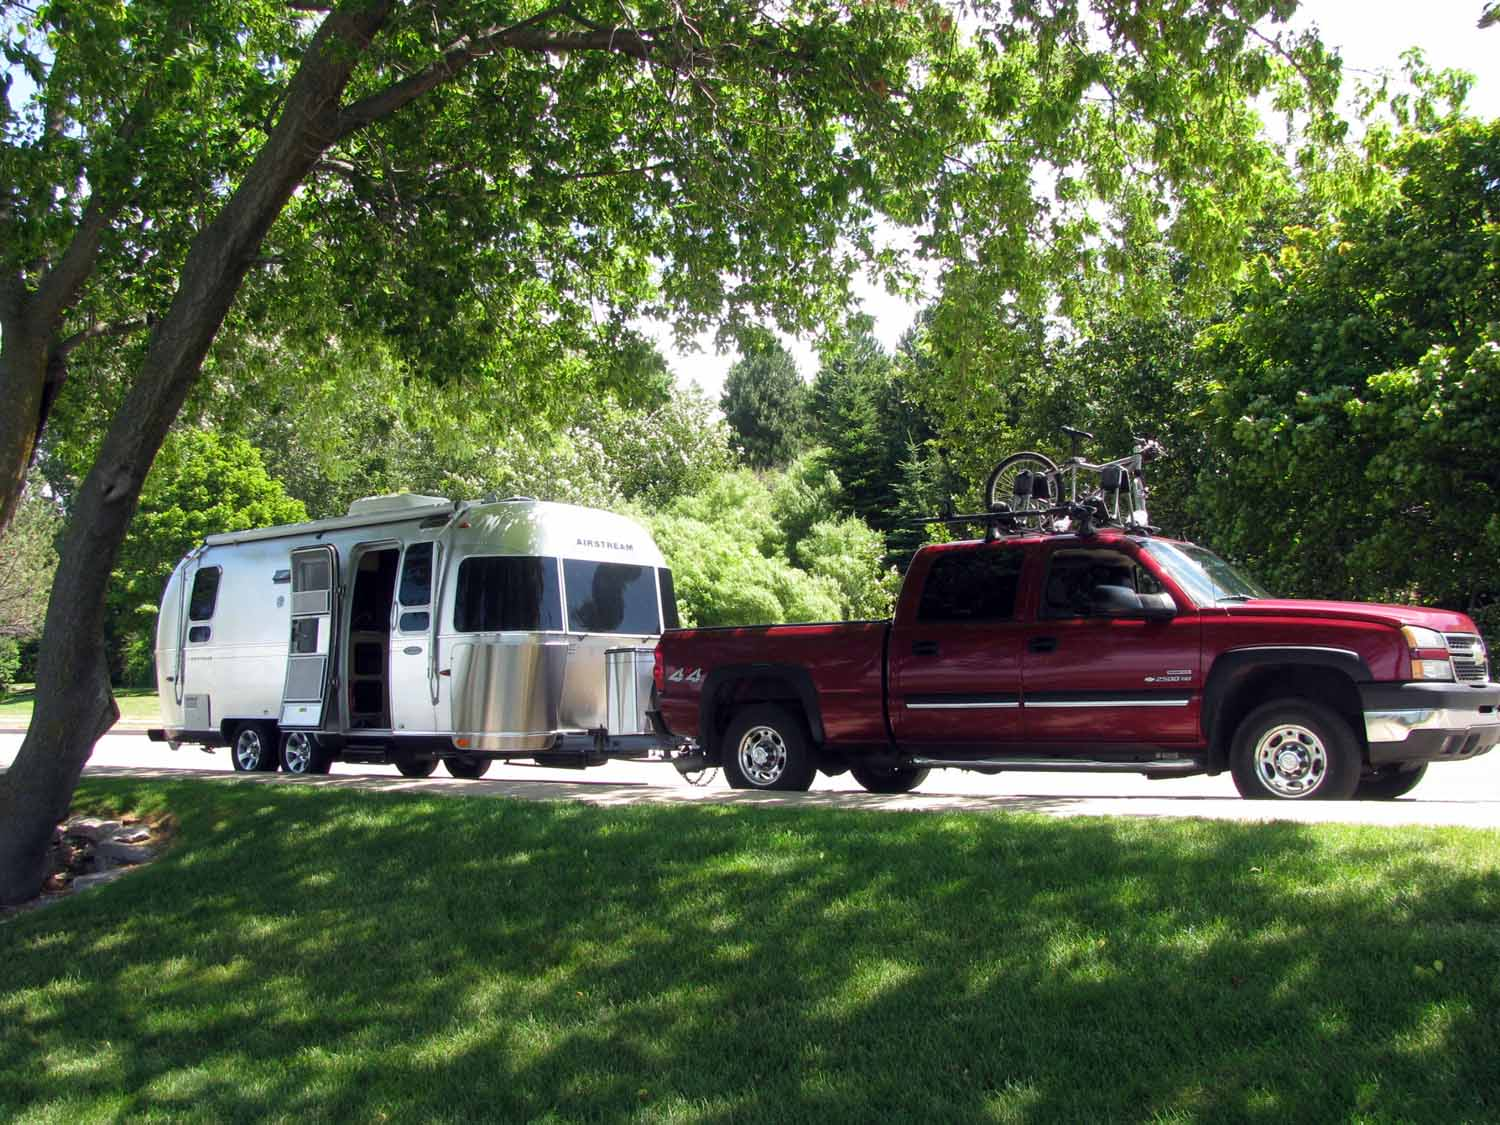 Bringing the RV home to Northern Michigan in june